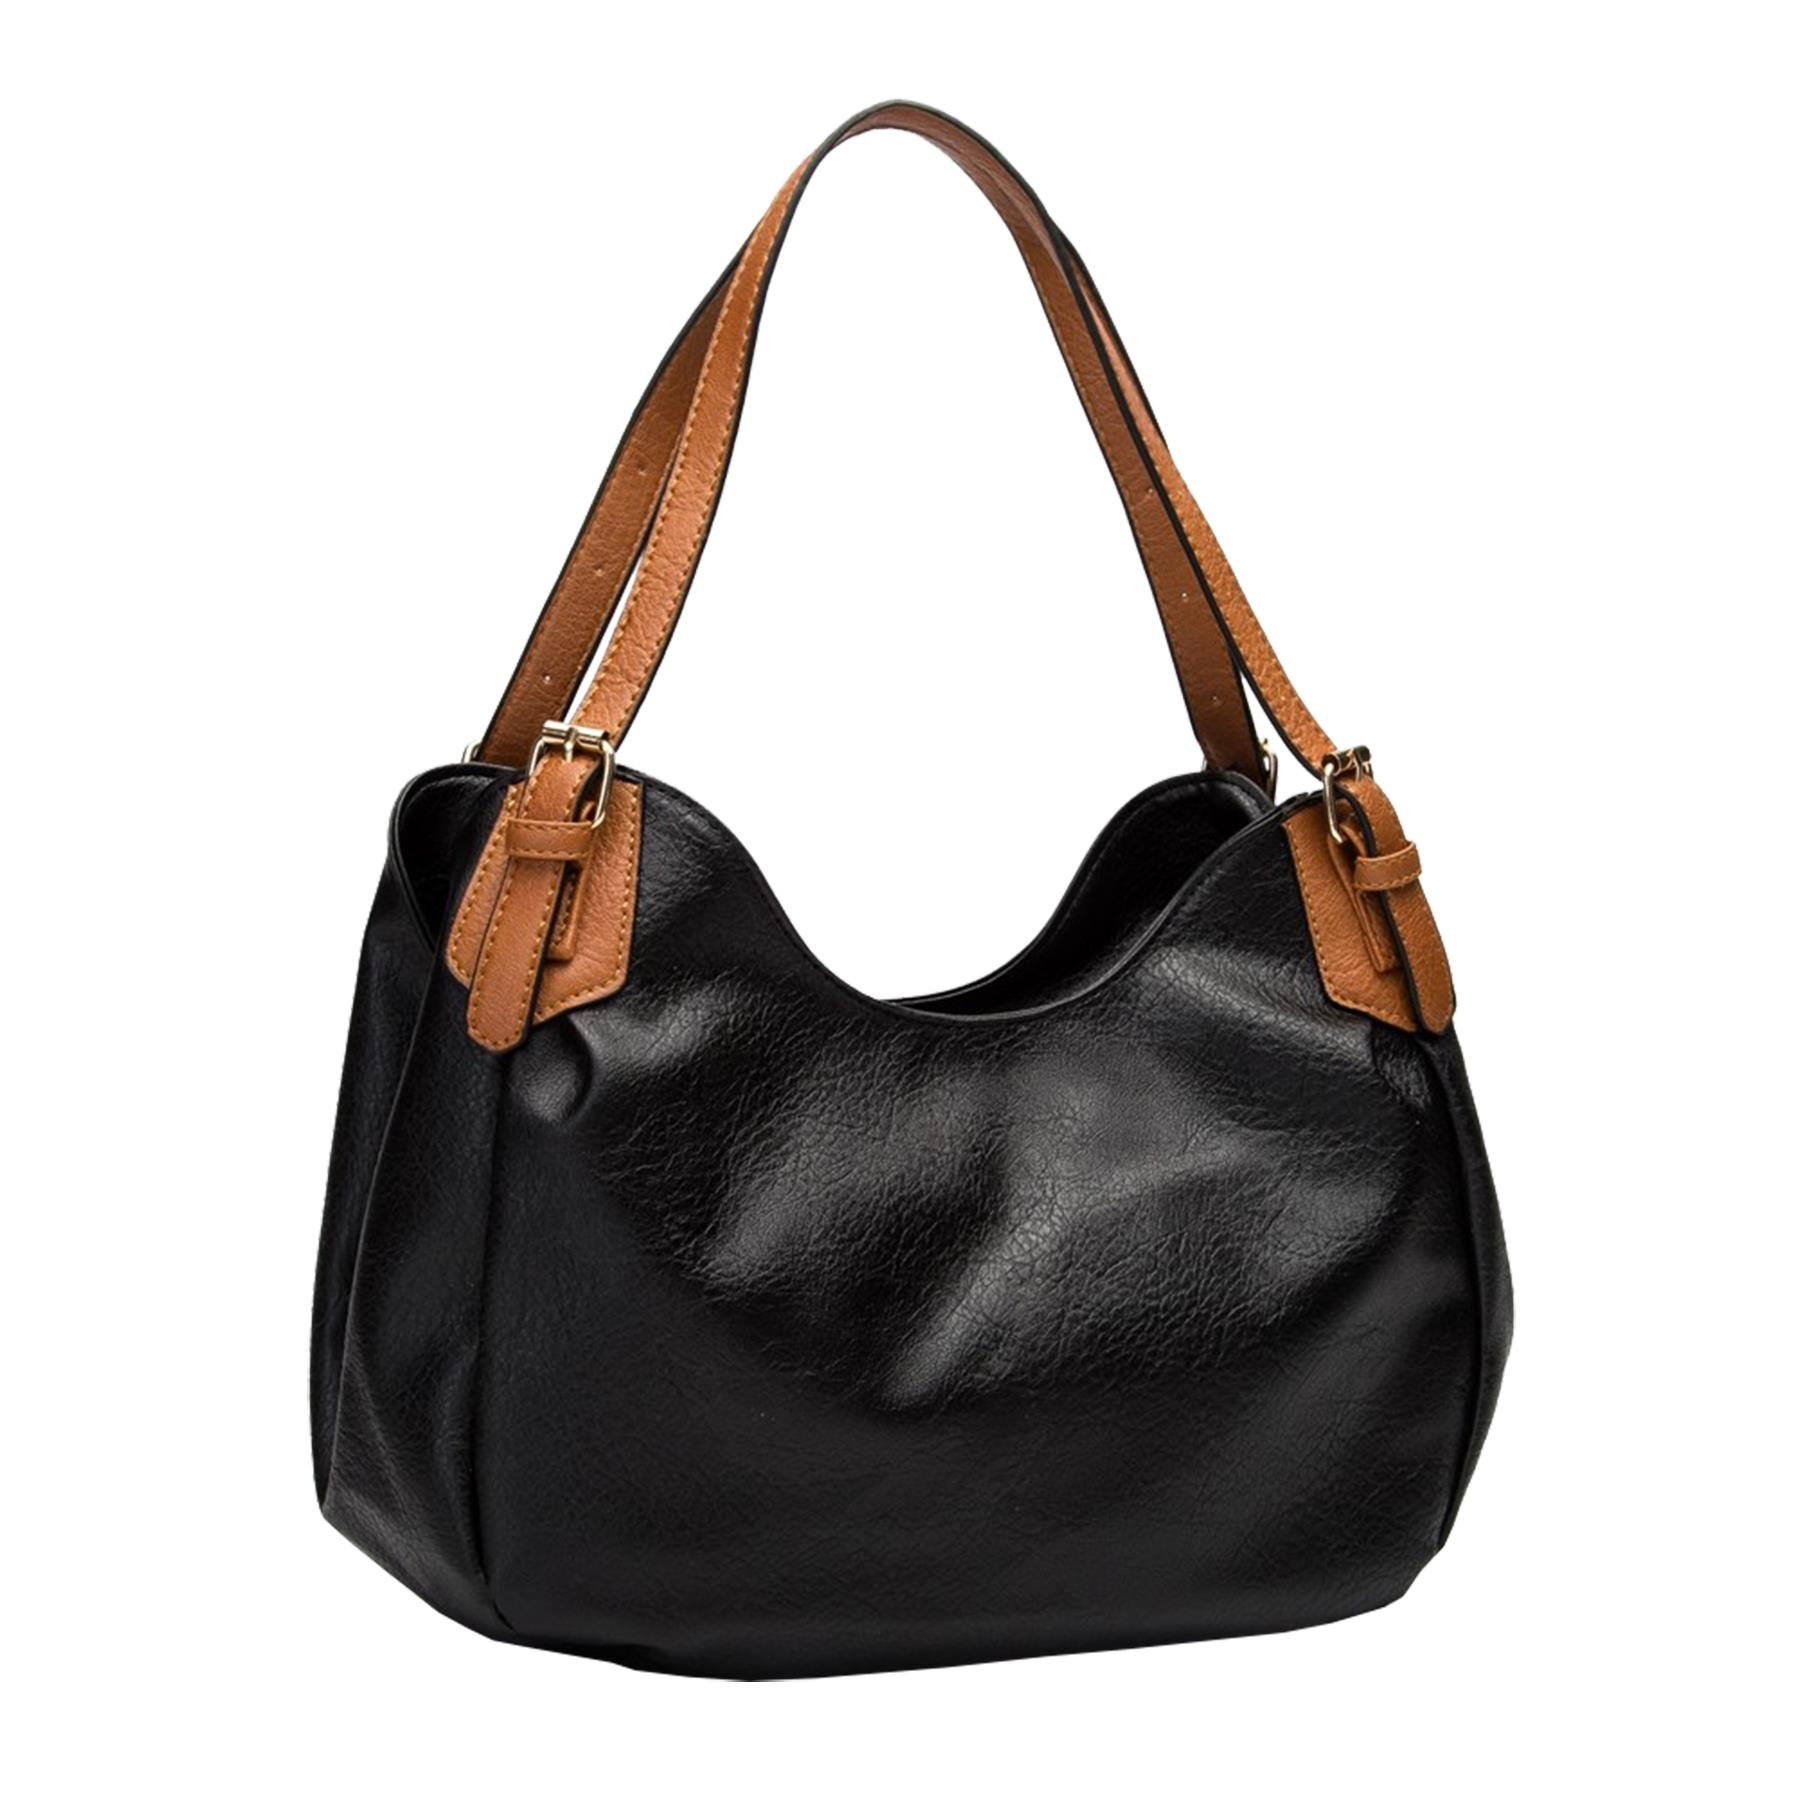 New-Ladies-Buckled-Straps-Two-Toned-Faux-Leather-Slouchy-Shoulder-Bag thumbnail 3